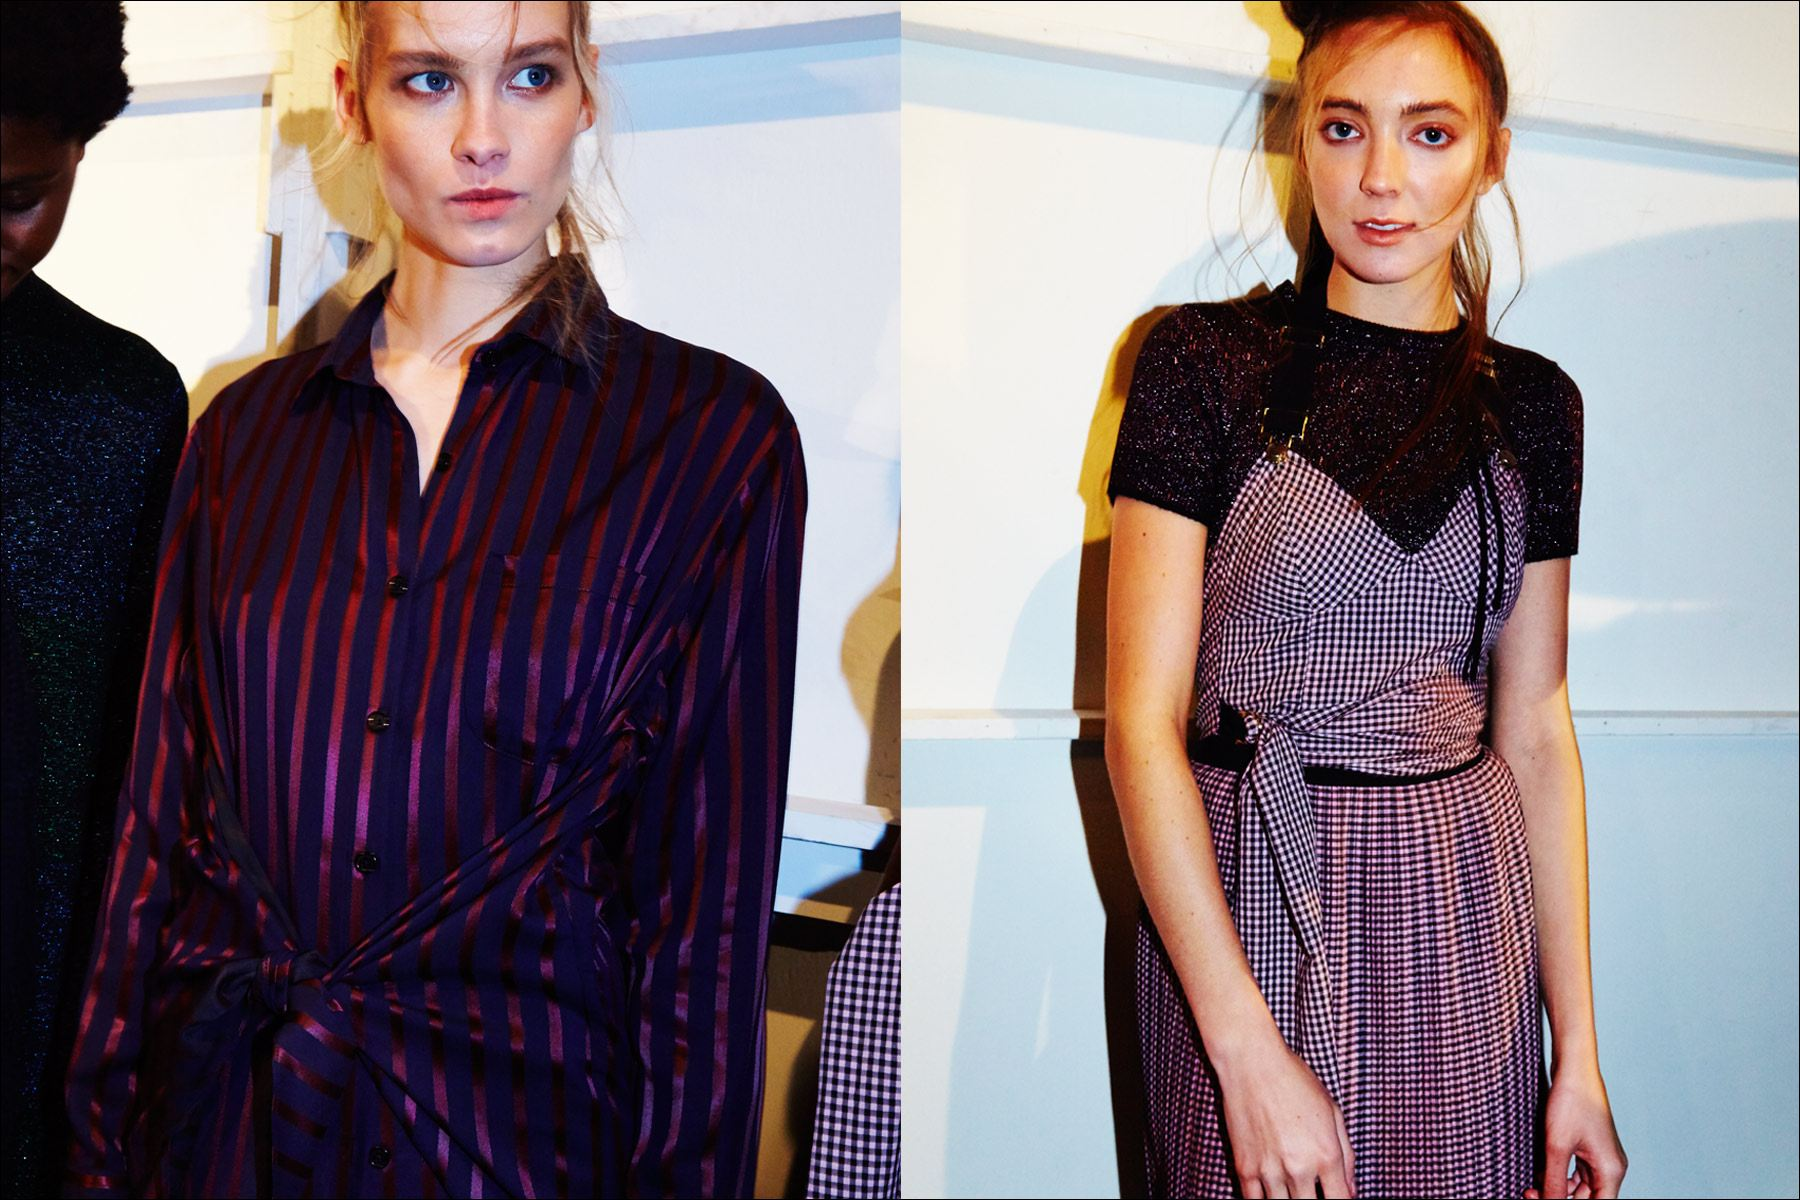 Models in stripes and gingham, backstage at the Adam Selman Fall 2017 womenswear show in New York City. Photographed by Alexander Thompson for Ponyboy magazine.